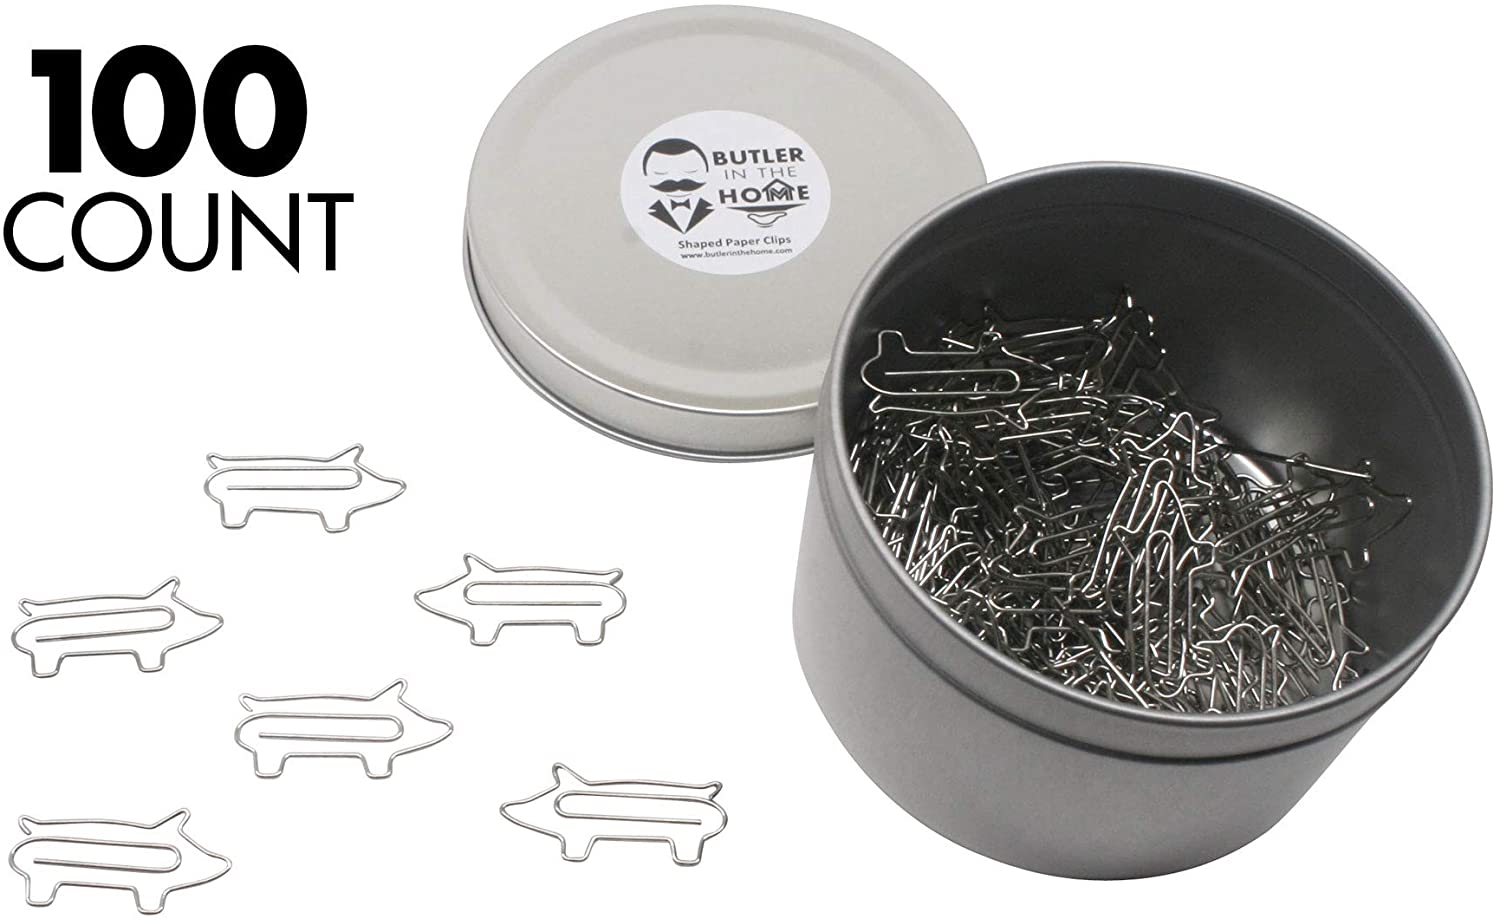 Butler in the Home Pig Shaped Paper Clips Great for Paper Clip Collectors or Office Gift - Comes in Round Tin with Lid and Gift Box (Silver)